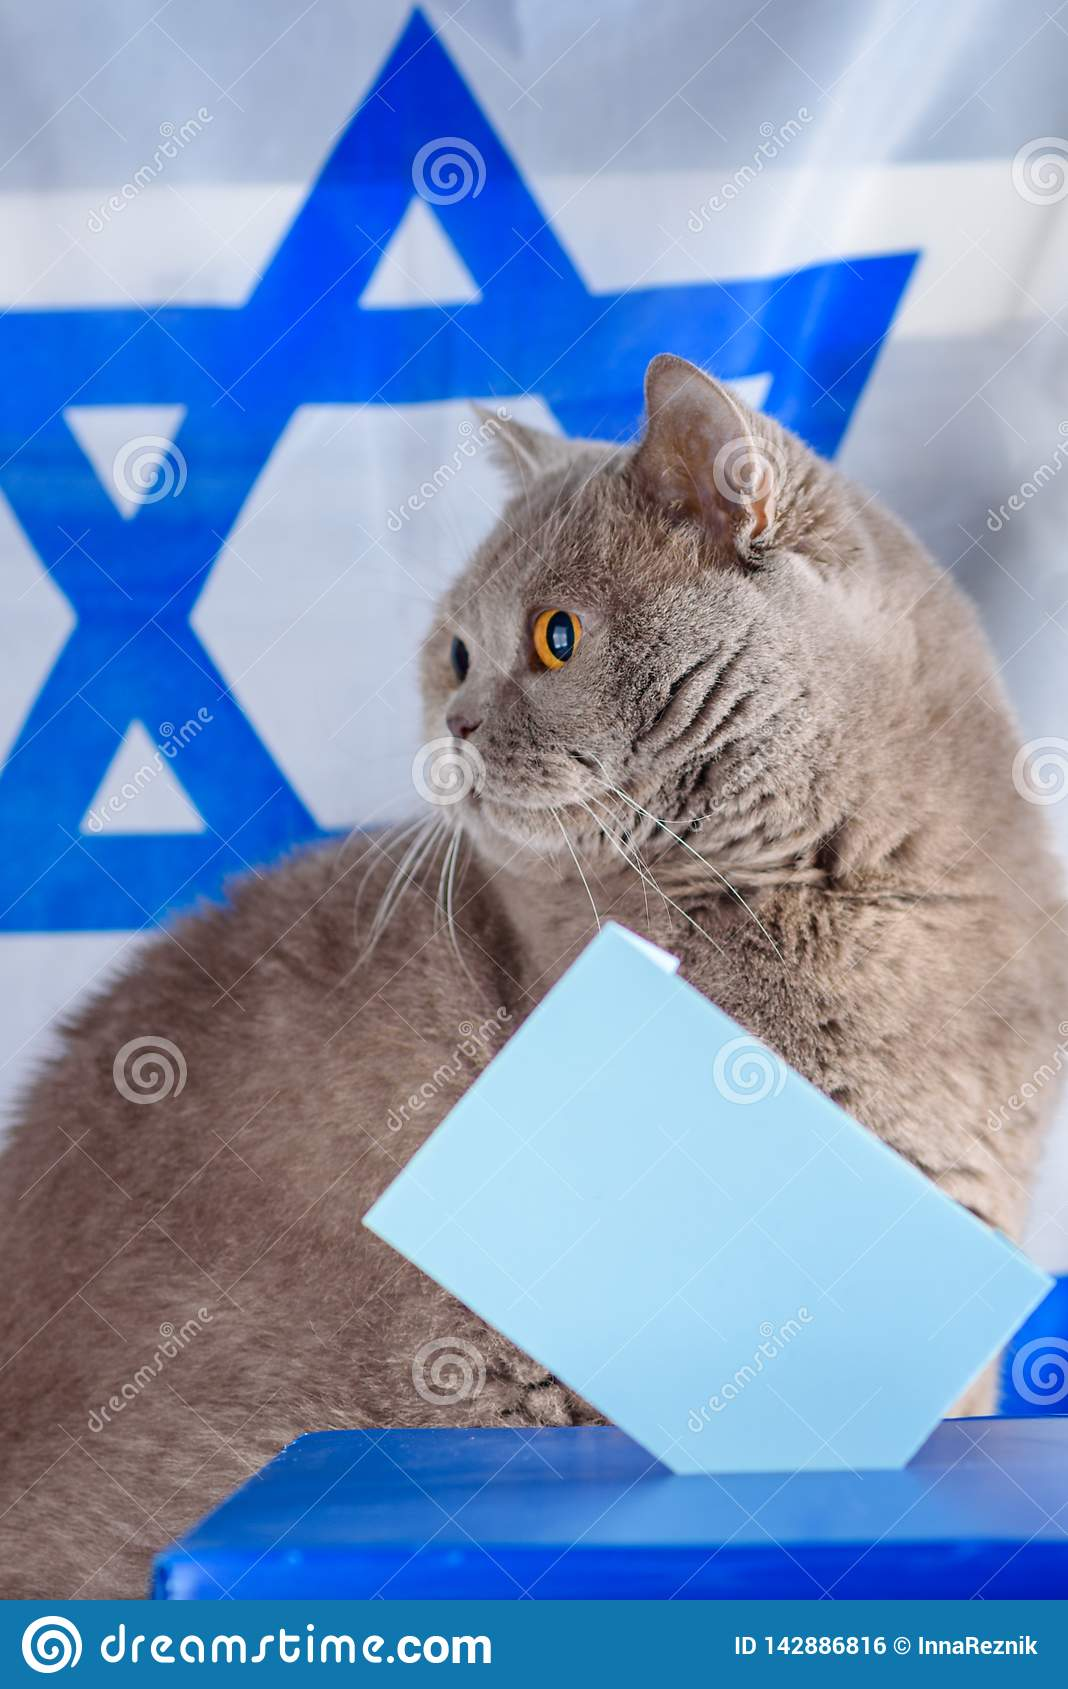 Cute cat, Vote box and ballot in a ballot box on election day over Israel flag background.